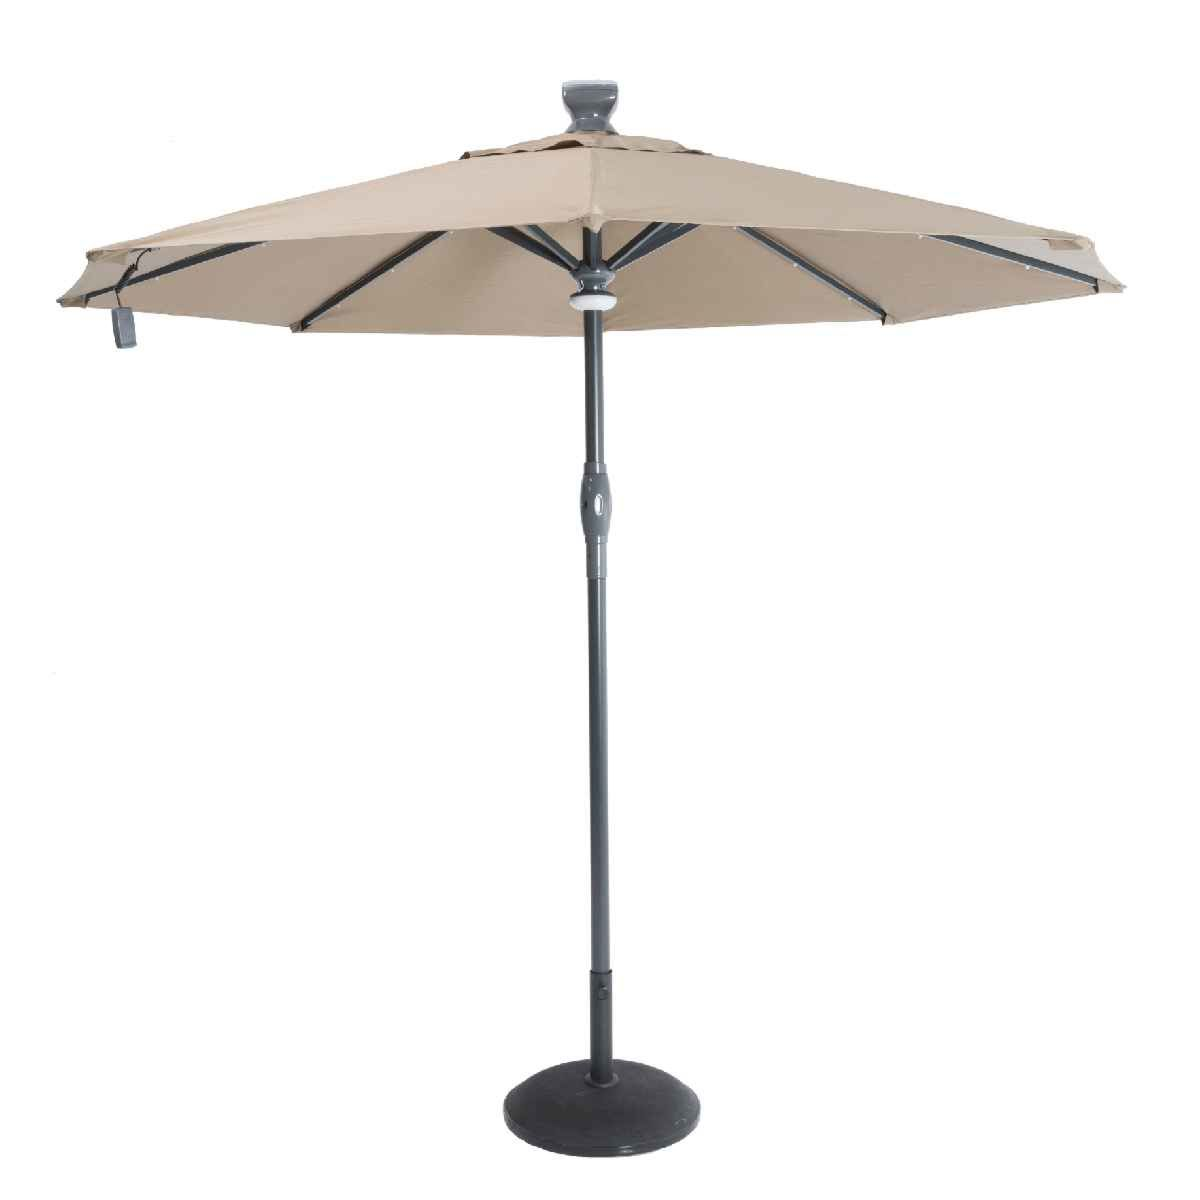 Garden Must Haves 3m Solar Automatic Opening & Closing Umbrella - Taupe